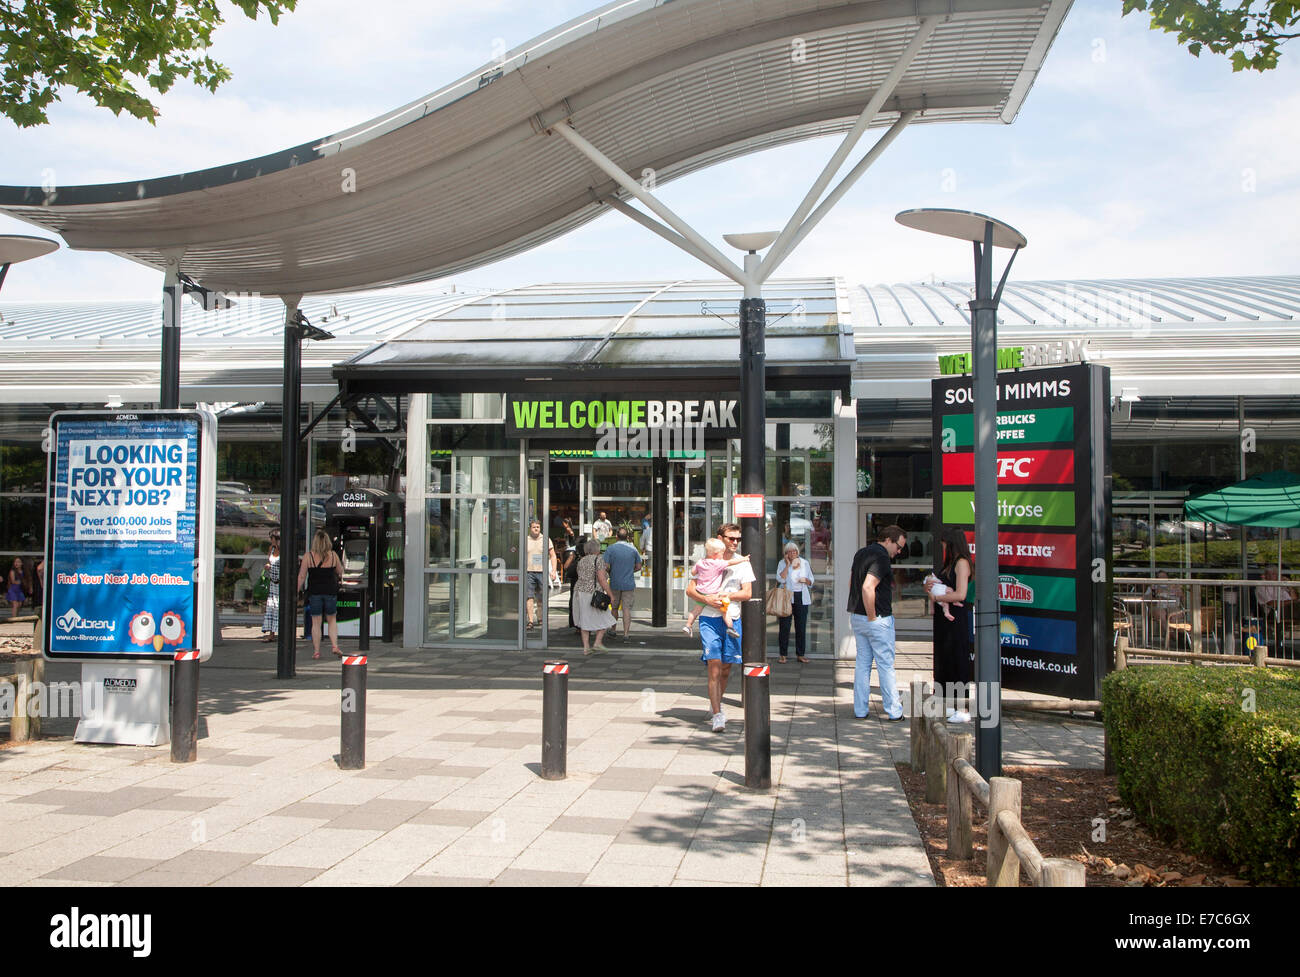 M25 motorway services at Welcome Break Service Station, South Mimms, Potters Bar, Hertfordshire, England - Stock Image